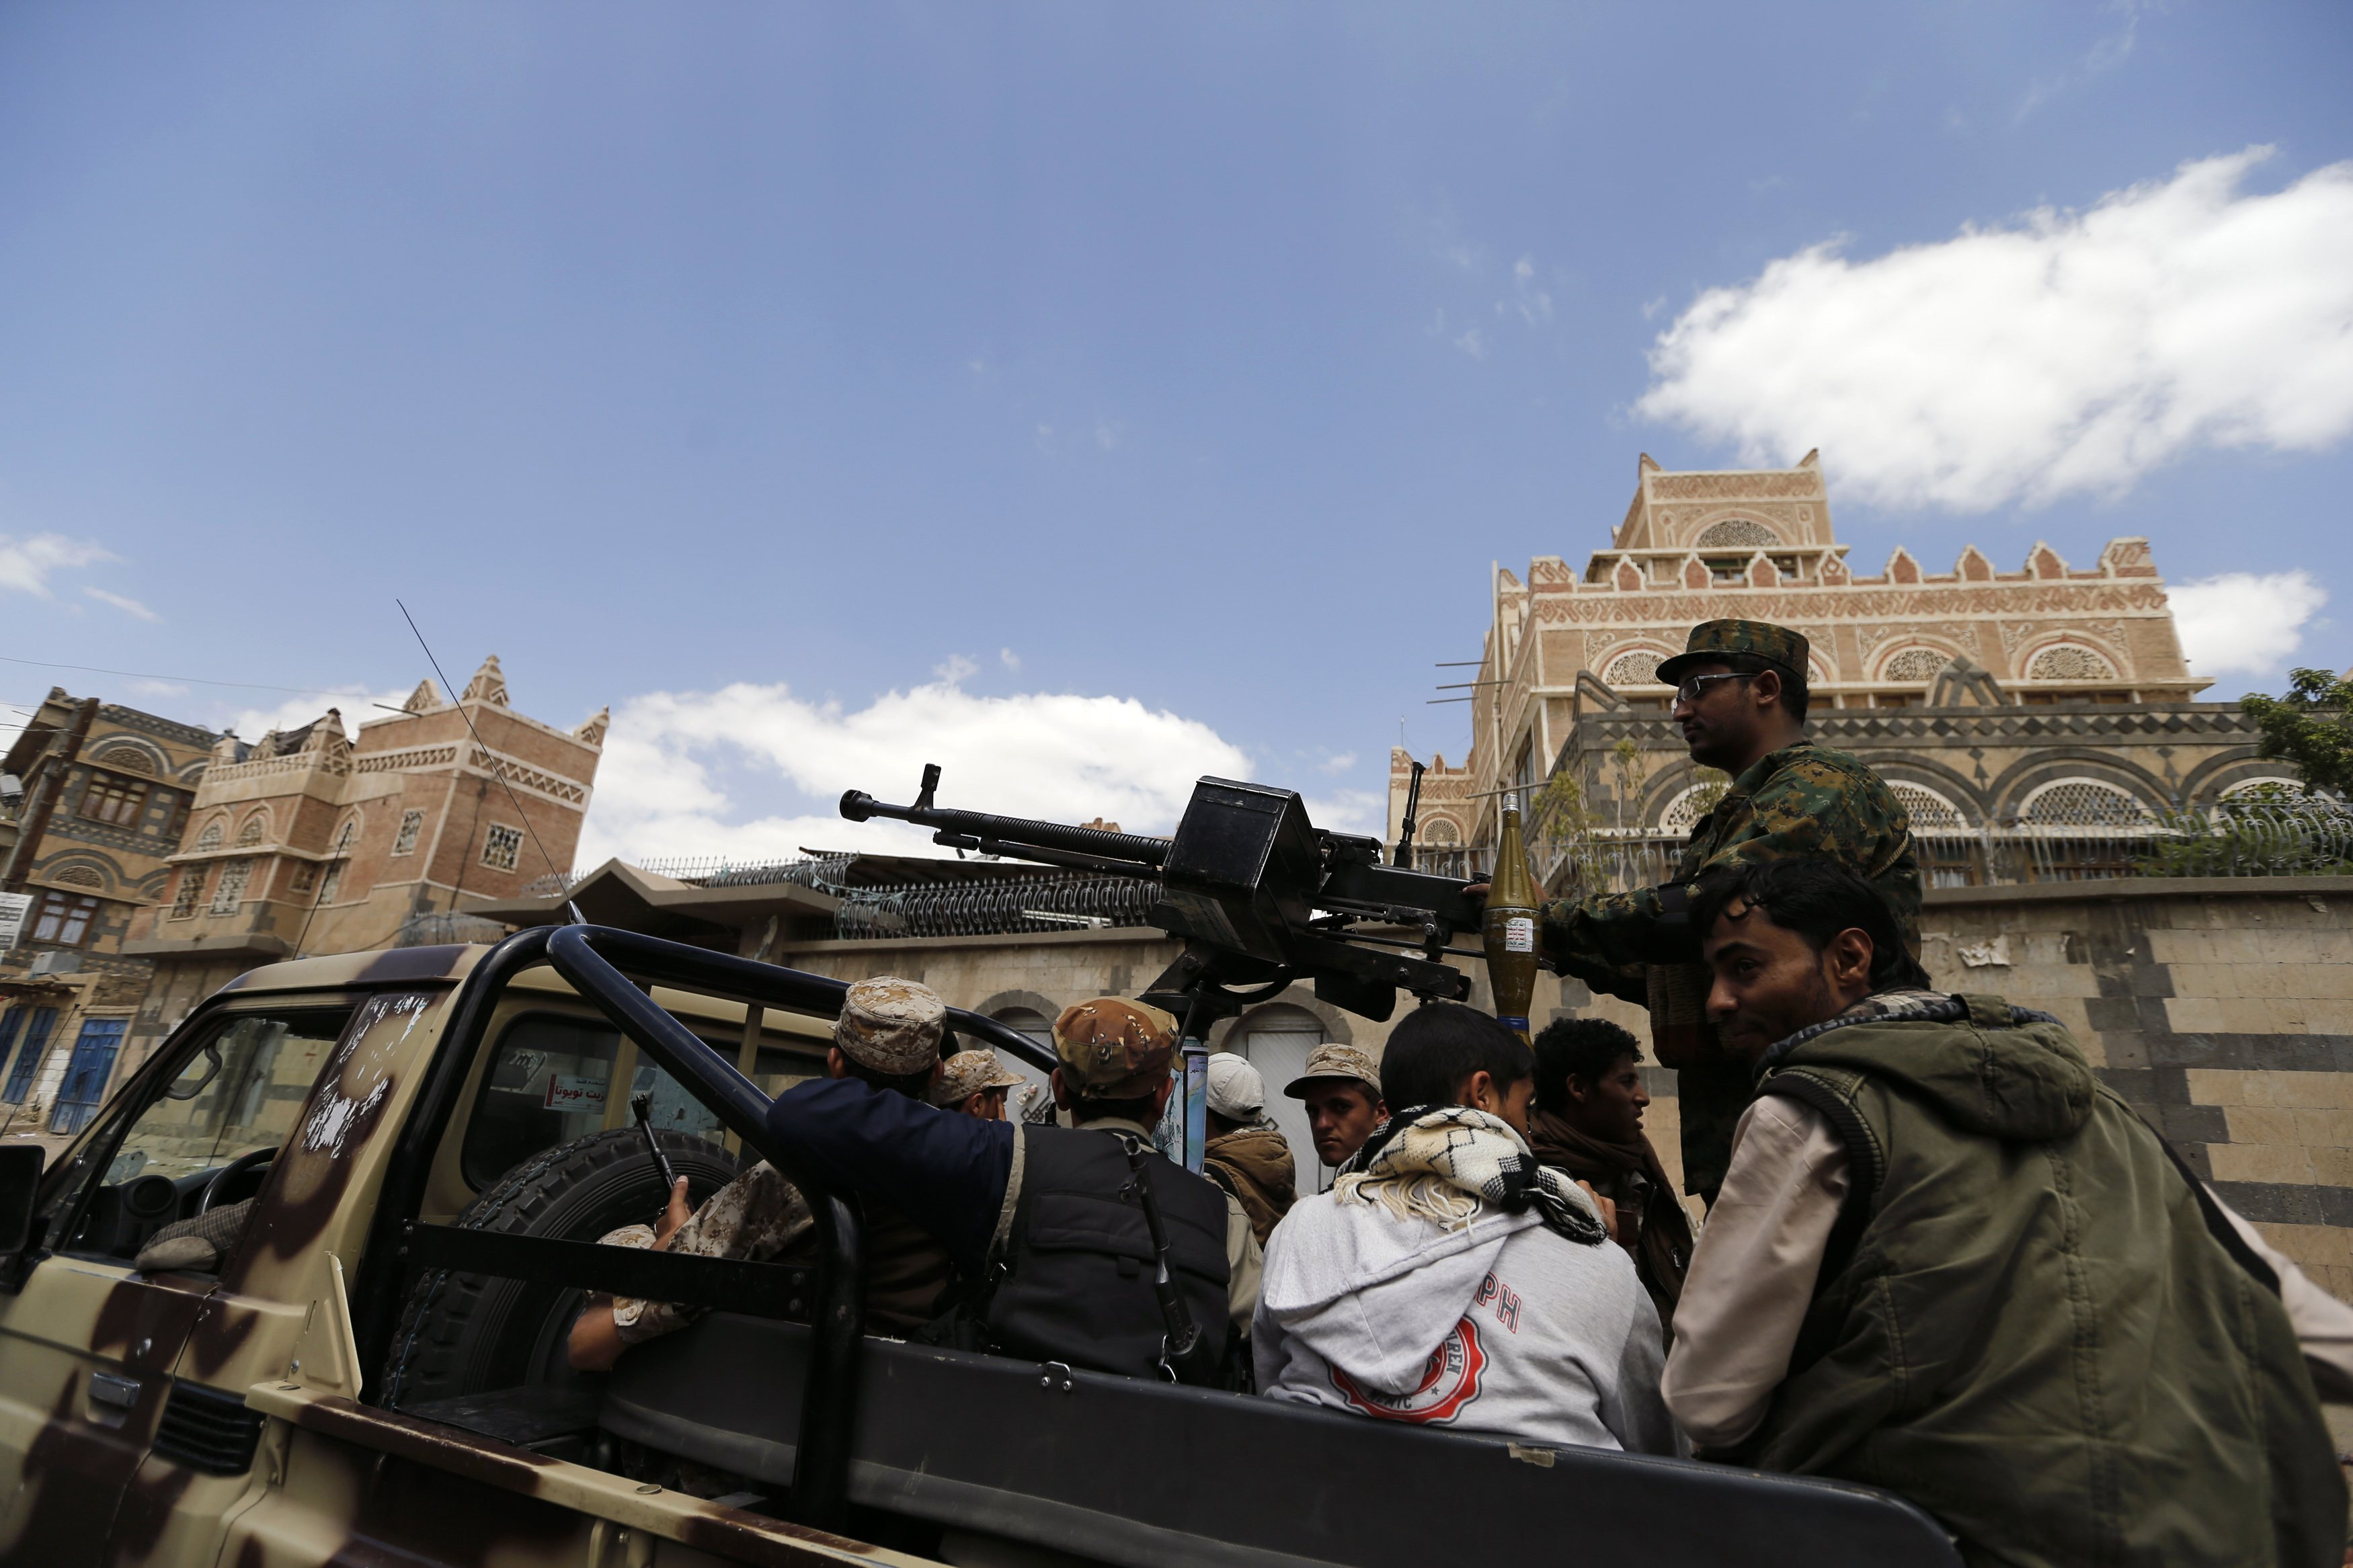 Shi'ite Houthi militants patrol the vicinity of a venue where a mass funeral for victims of a suicide attack on followers of the Shi'ite Houthi group was being held in Sanaa